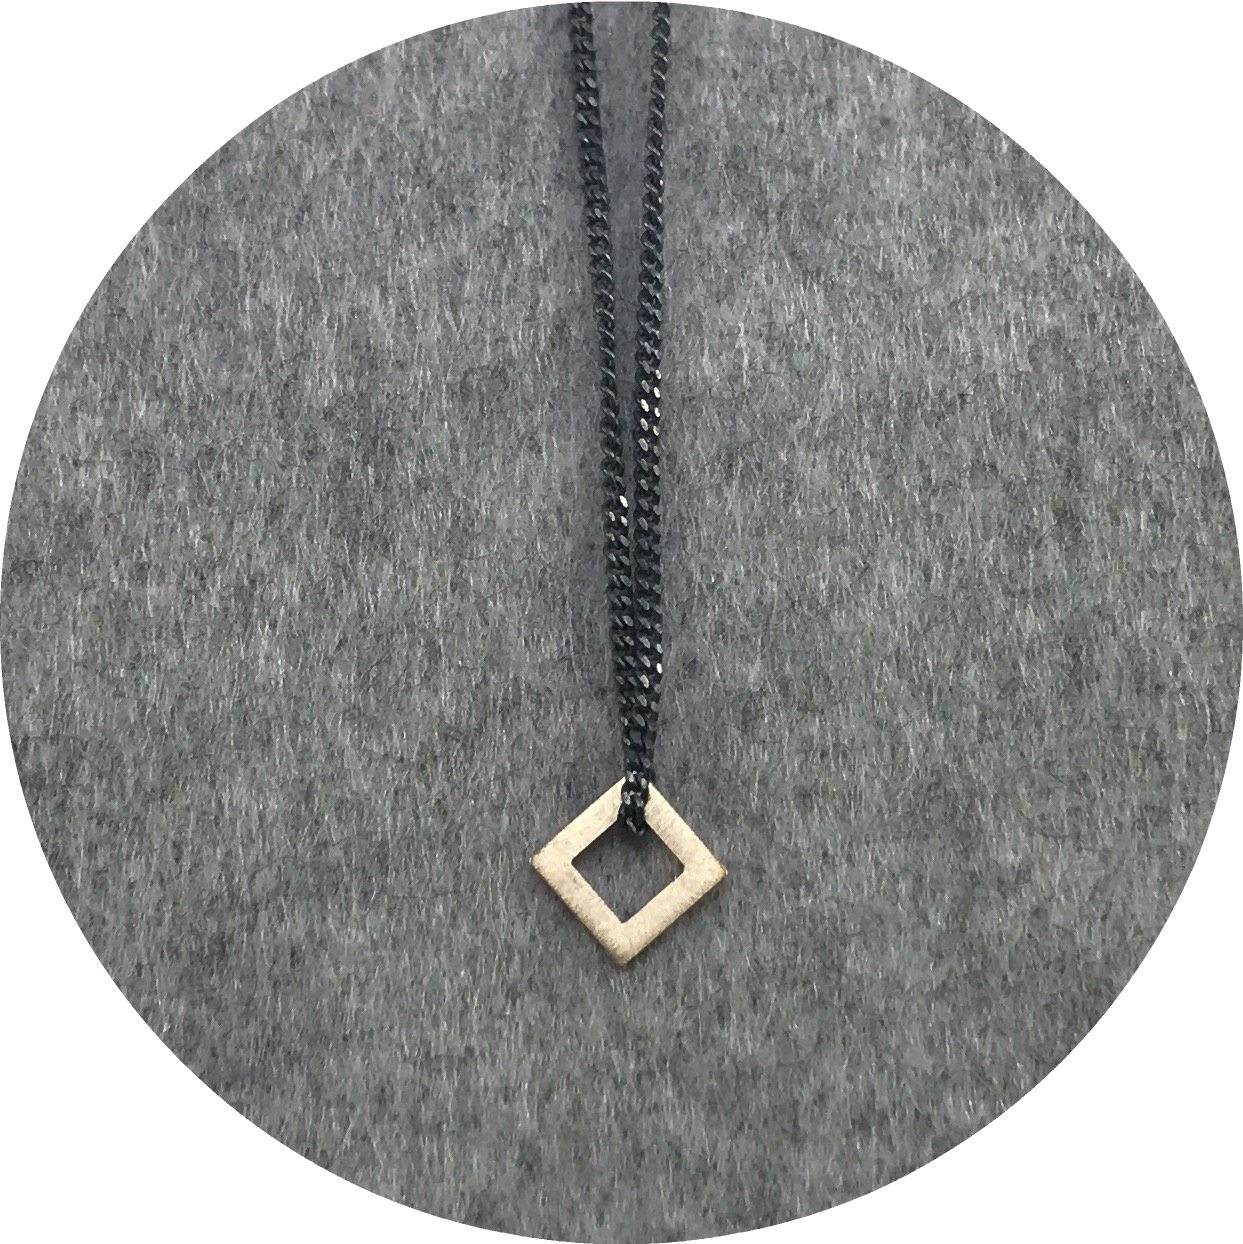 Cass Partington- Square Tab Pendant. 18ct yellow gold on 75cm oxidised sterling;ing silver chain.